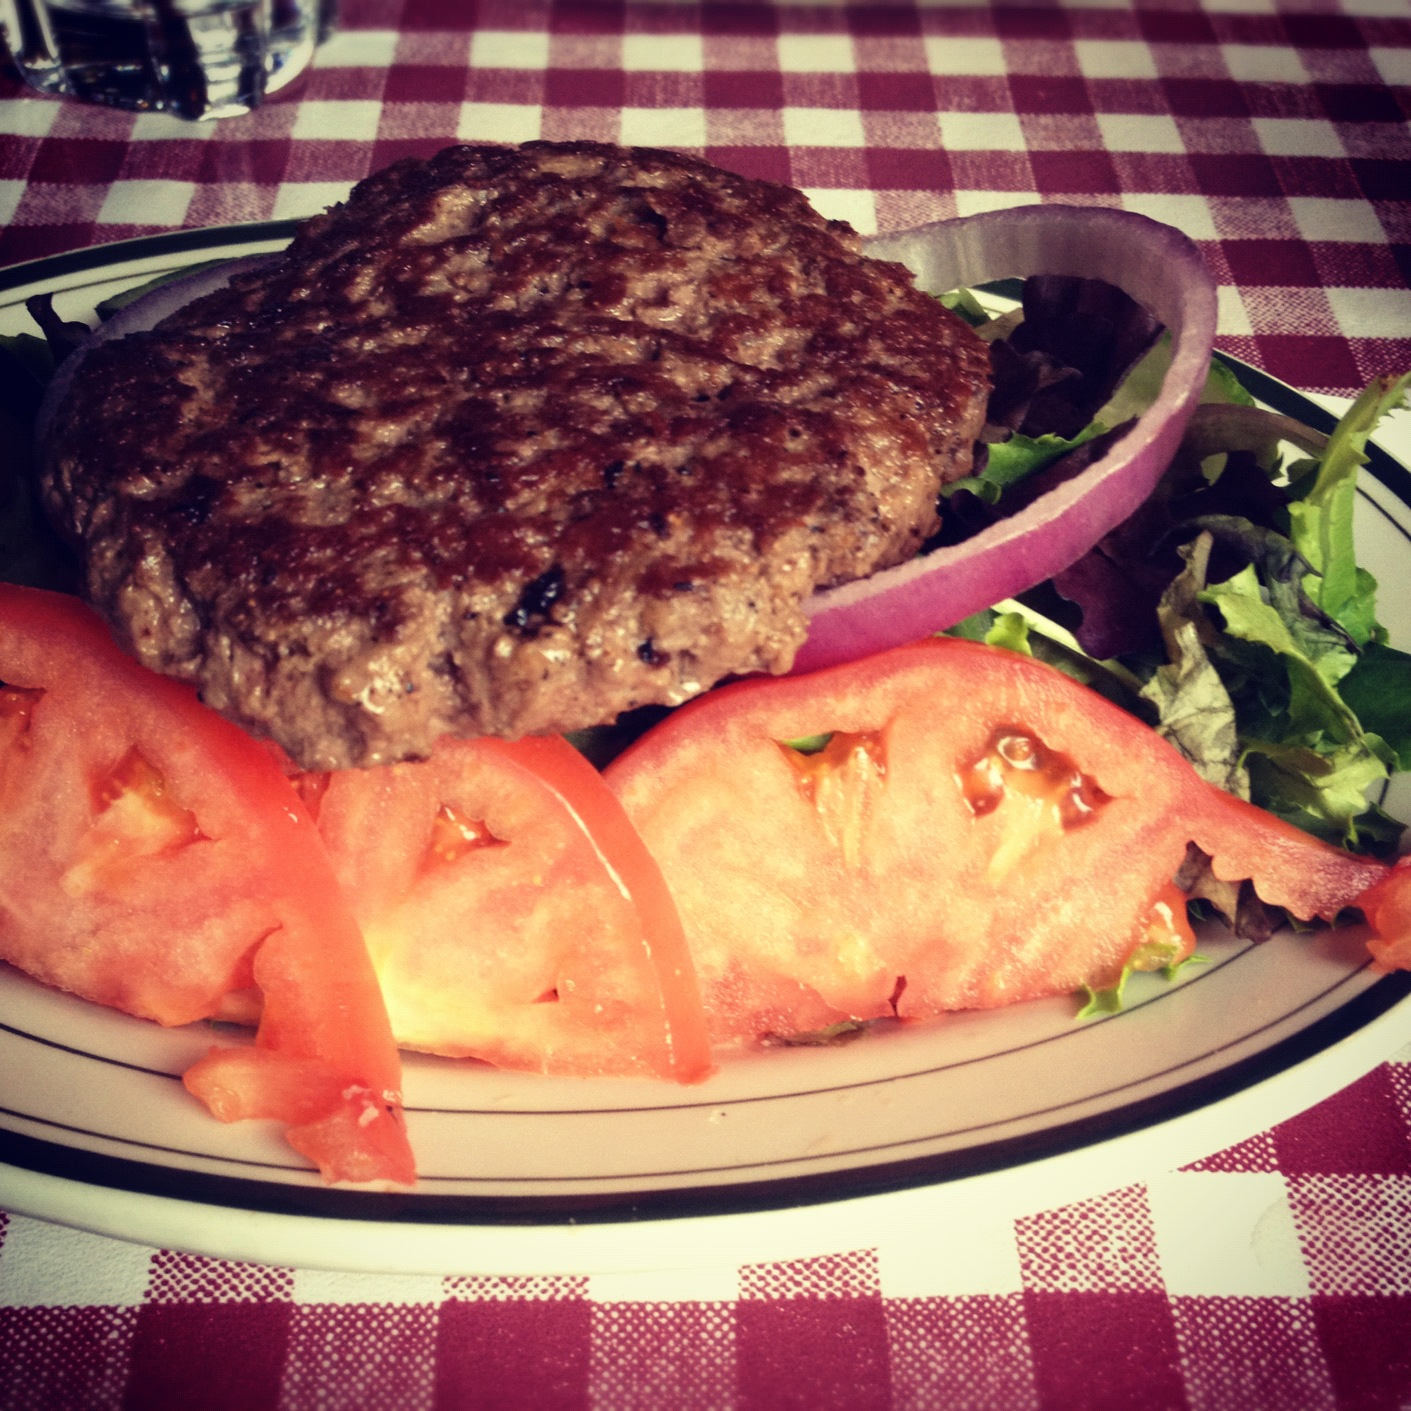 Pictured here is a griddled beef patty on top of a green salad from Bill's Burger—no dressing